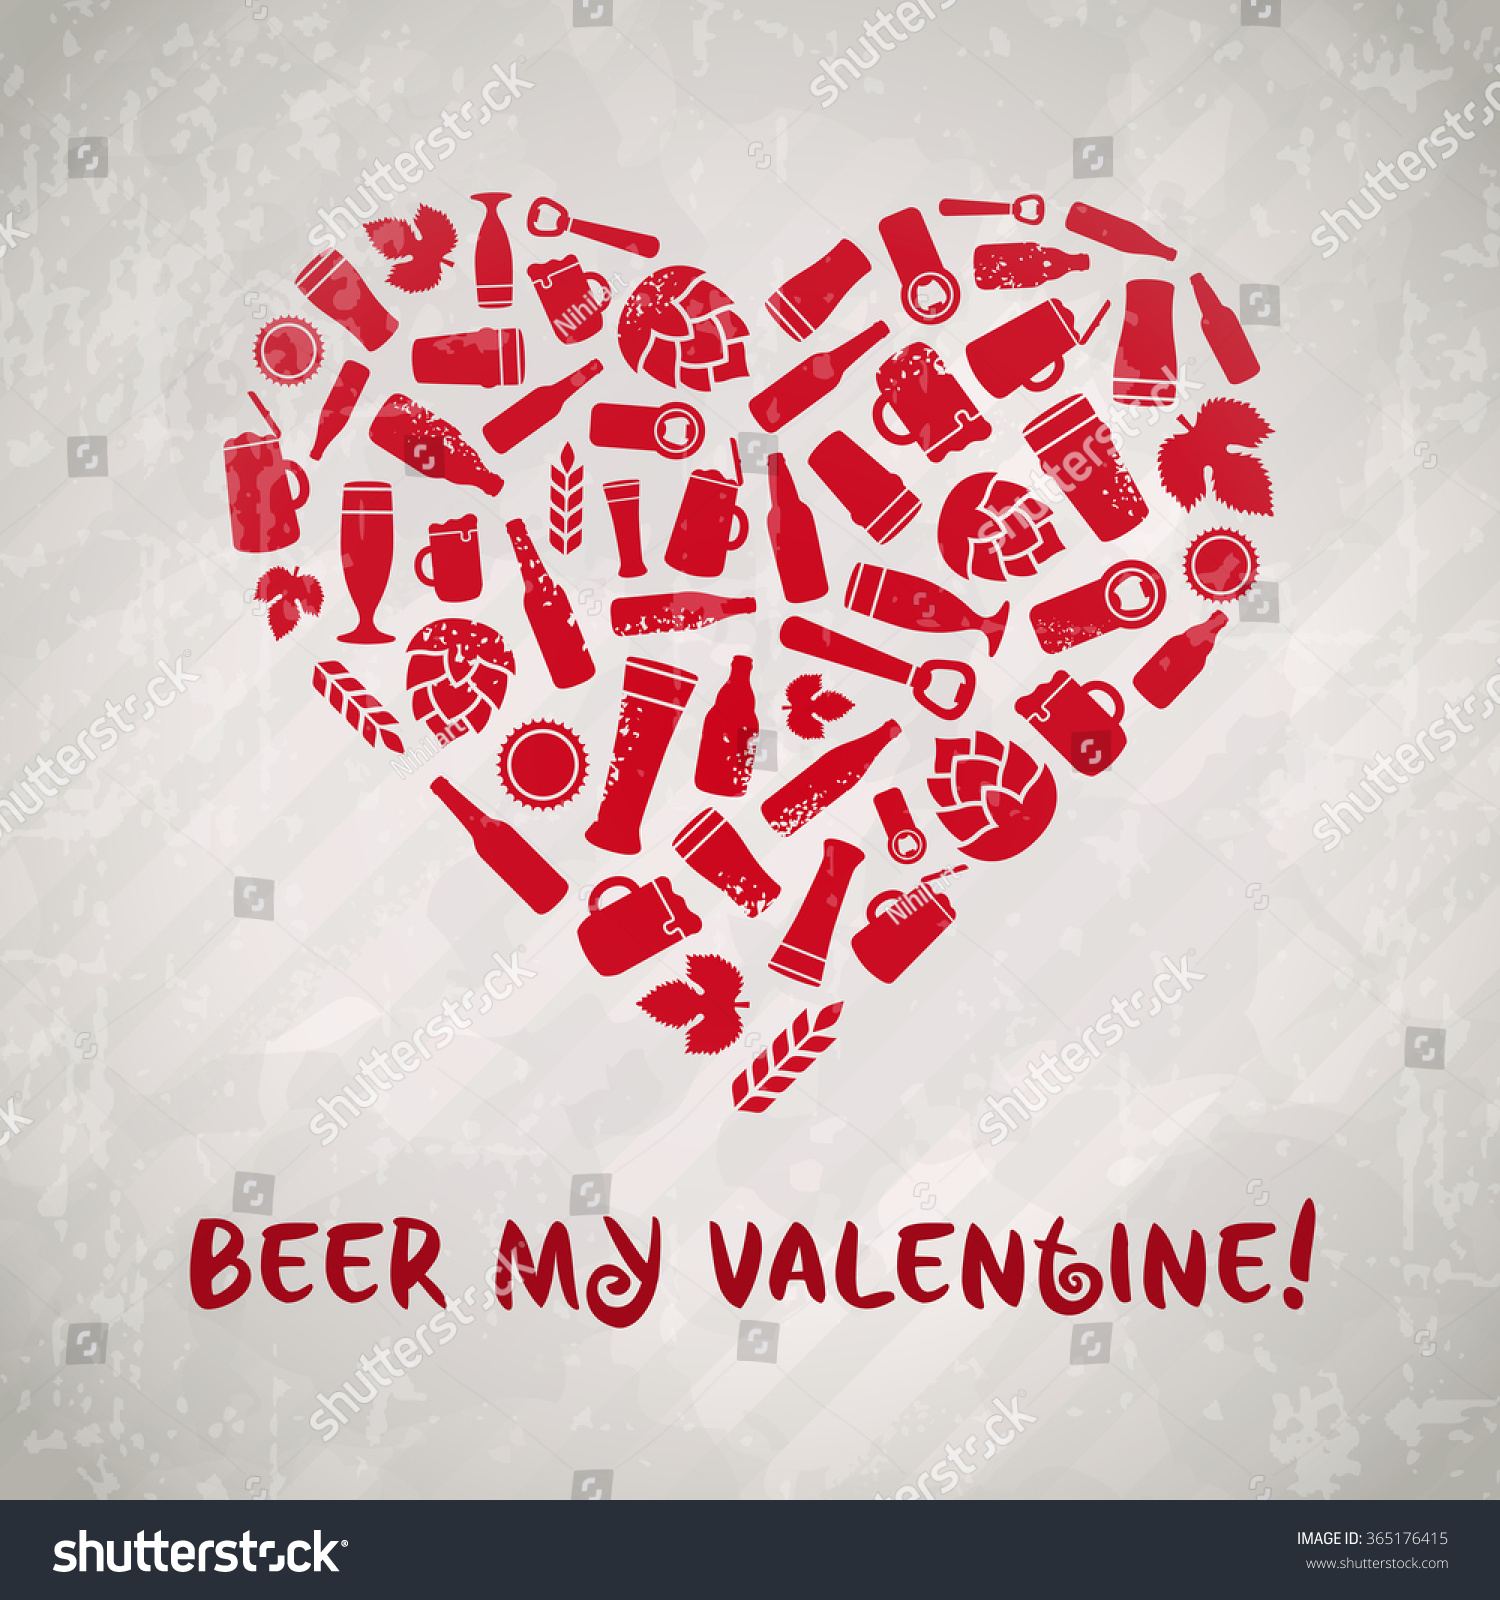 beer my valentine valentines day craft beer poster pink heart composed of bottles